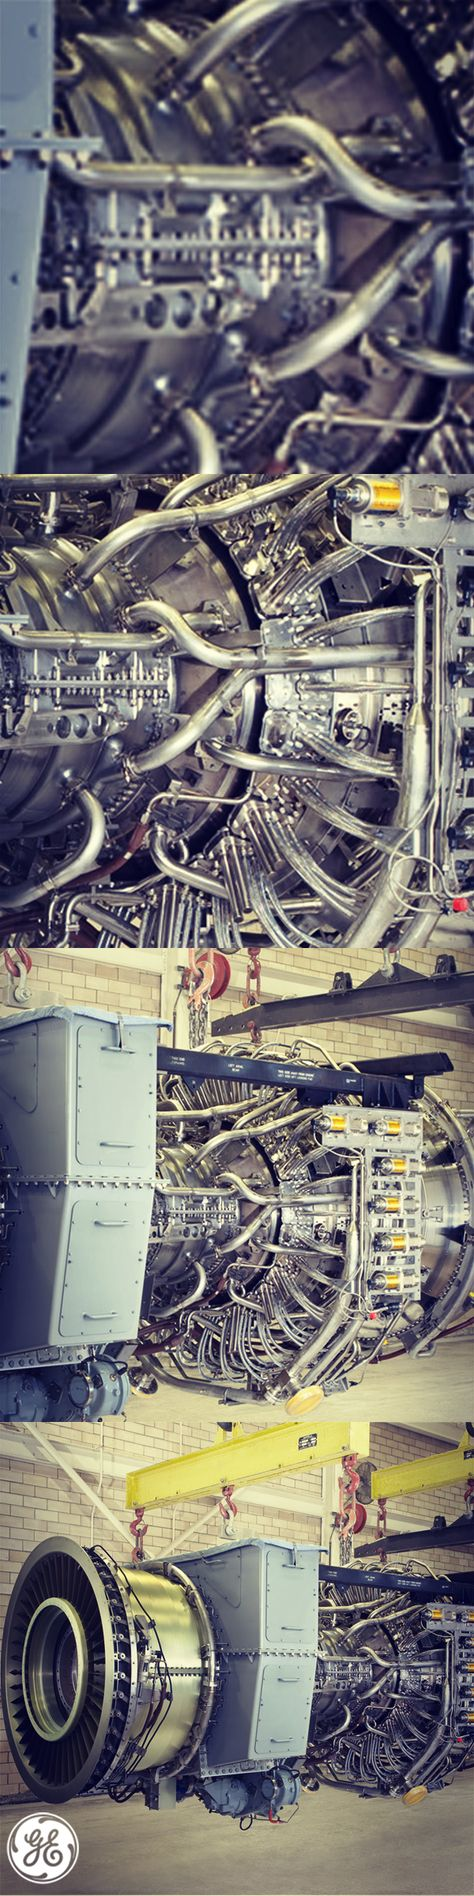 8 best GE AIRCRAFT ENGINES CINCINNATI OHIO images on Pinterest ...